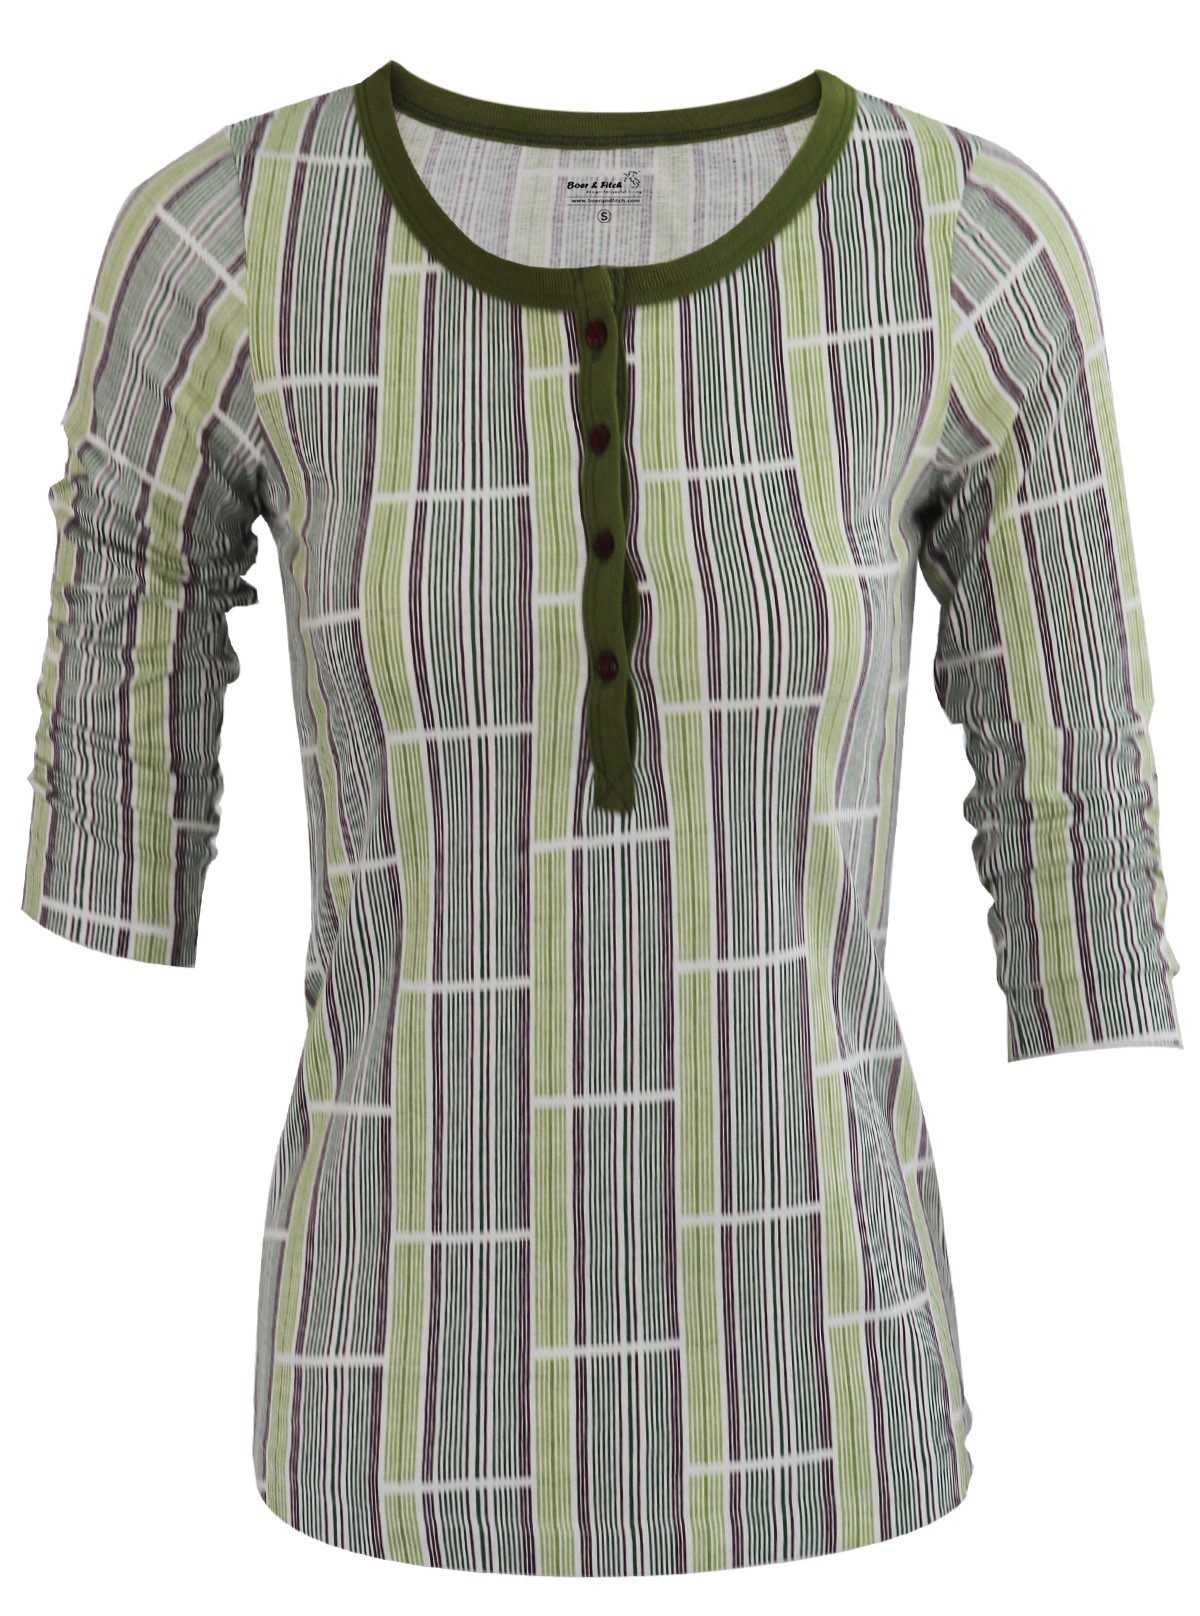 Green Graphic Stripe Women's Top